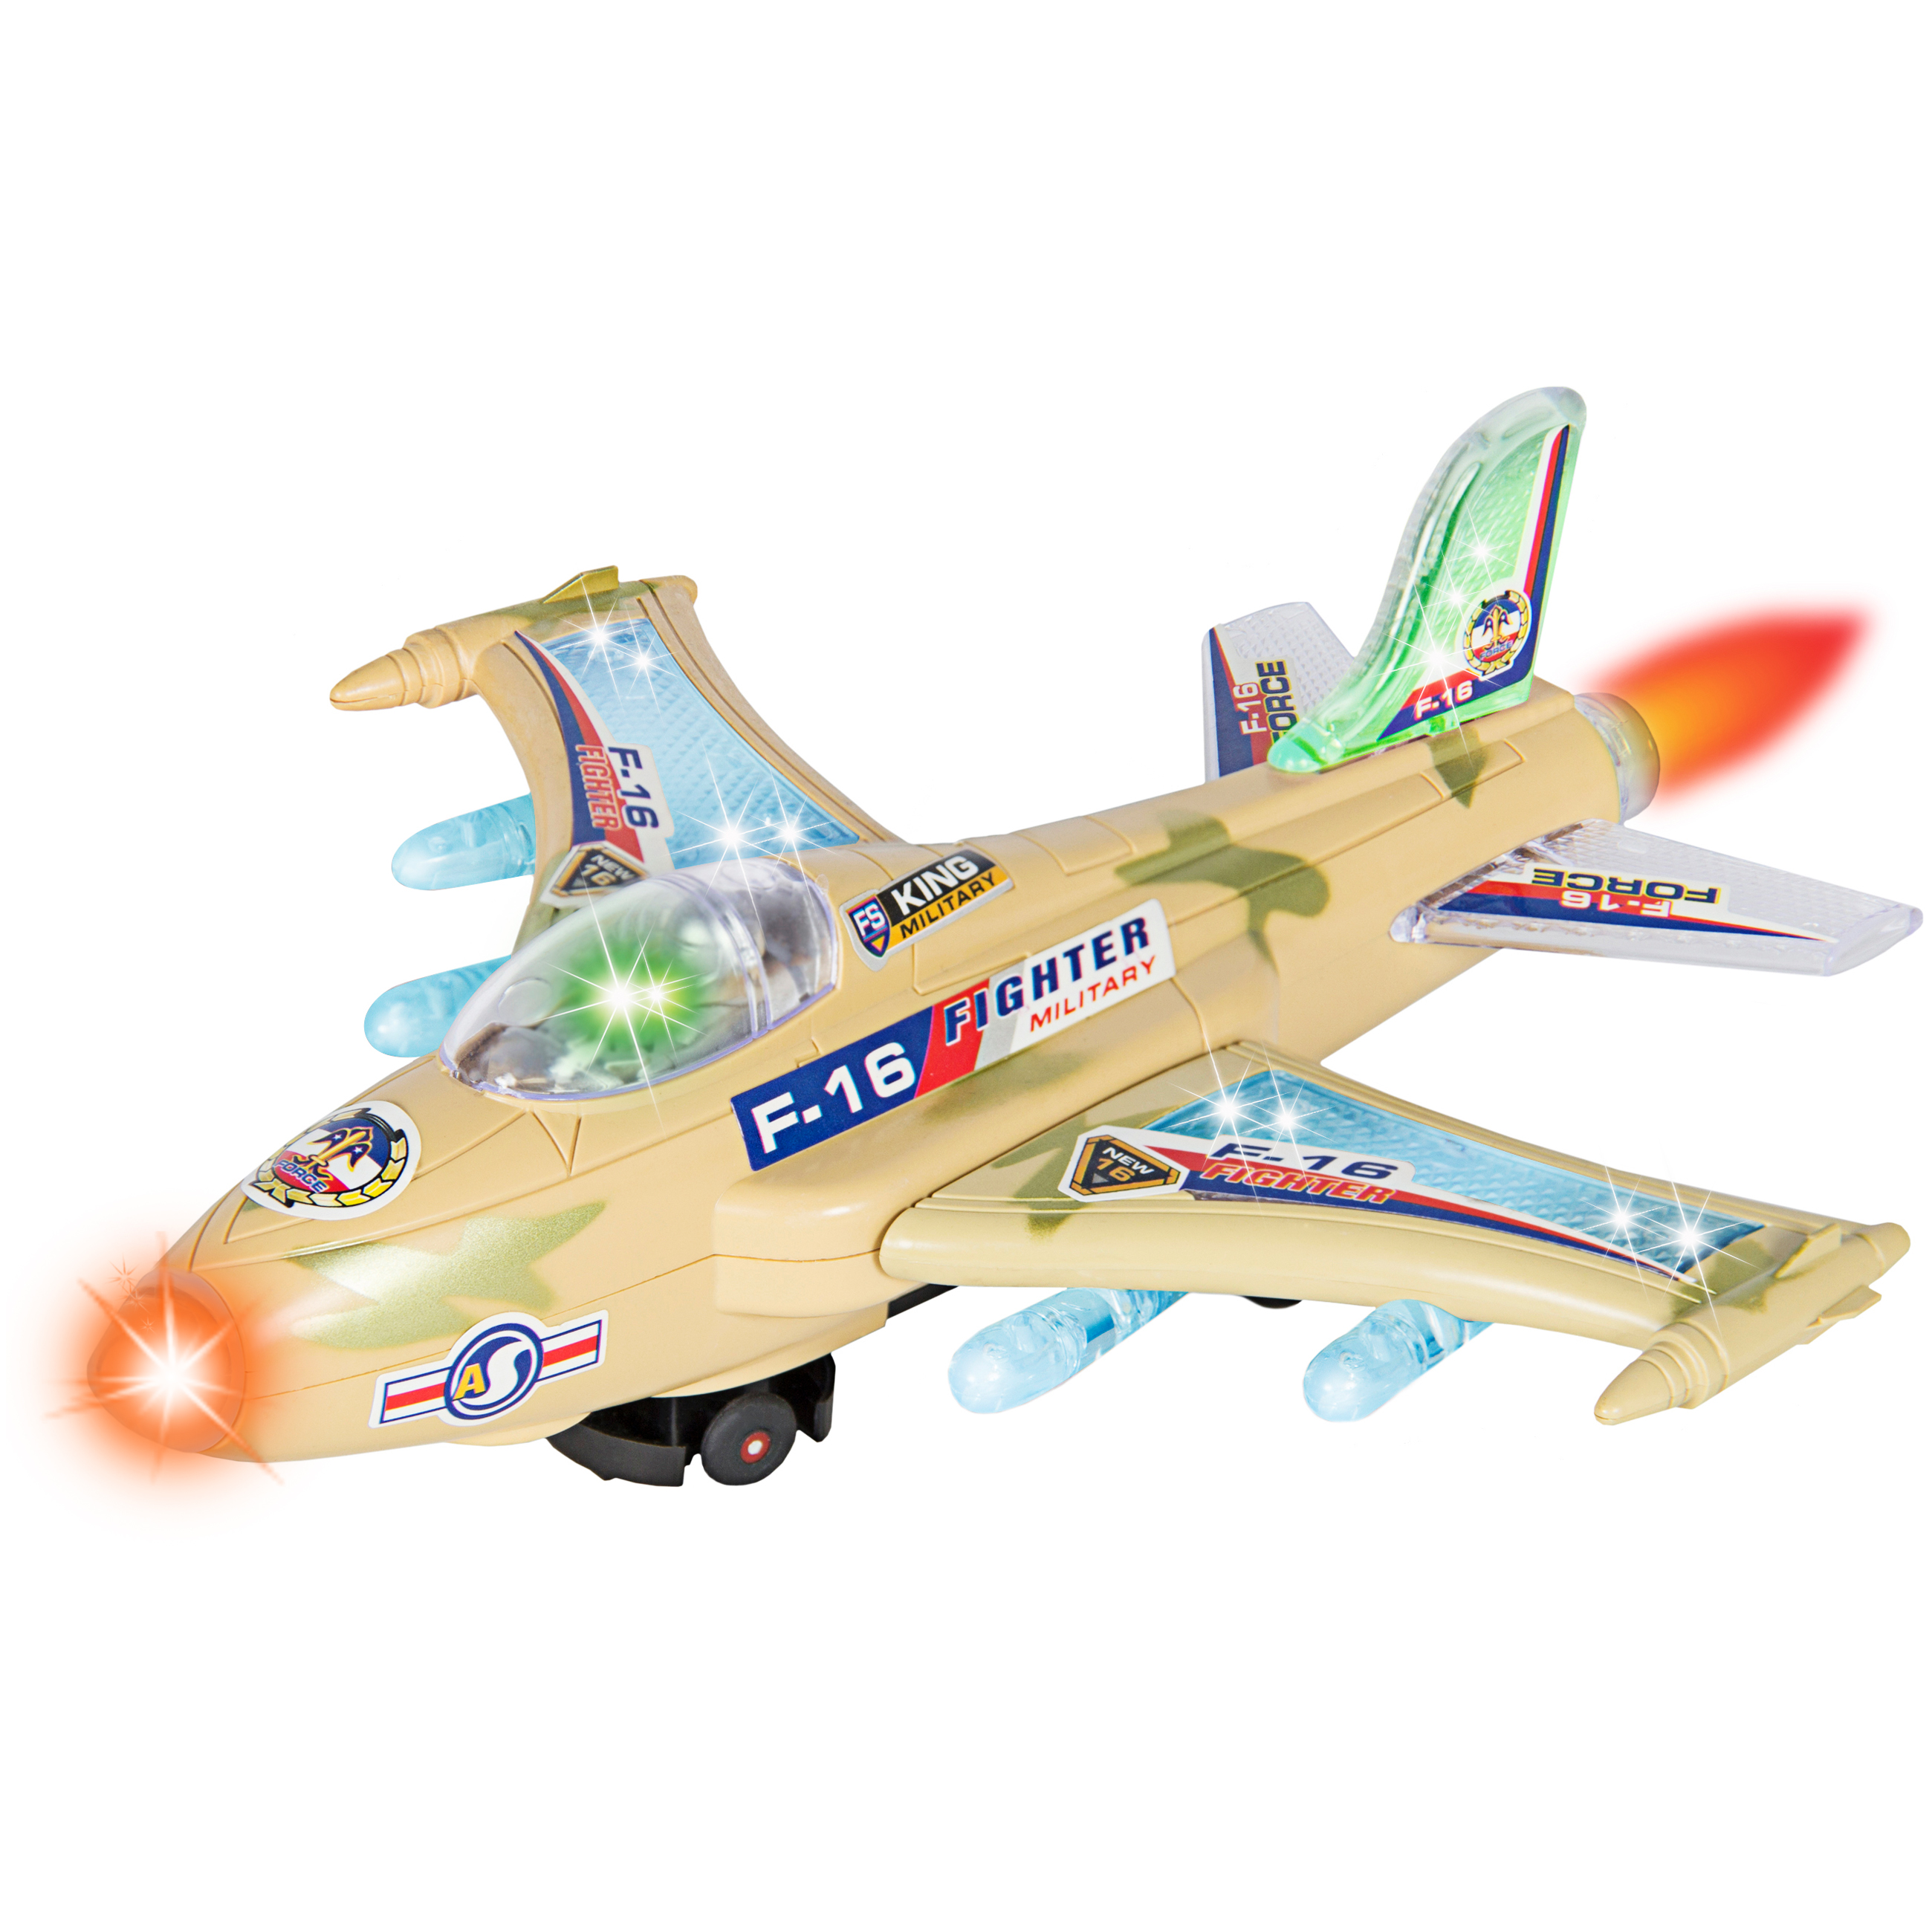 Best Choice Products Kids Toy F-16 Figher Jet Airplane, Flashing Lights and Sound, Bump and Go Action